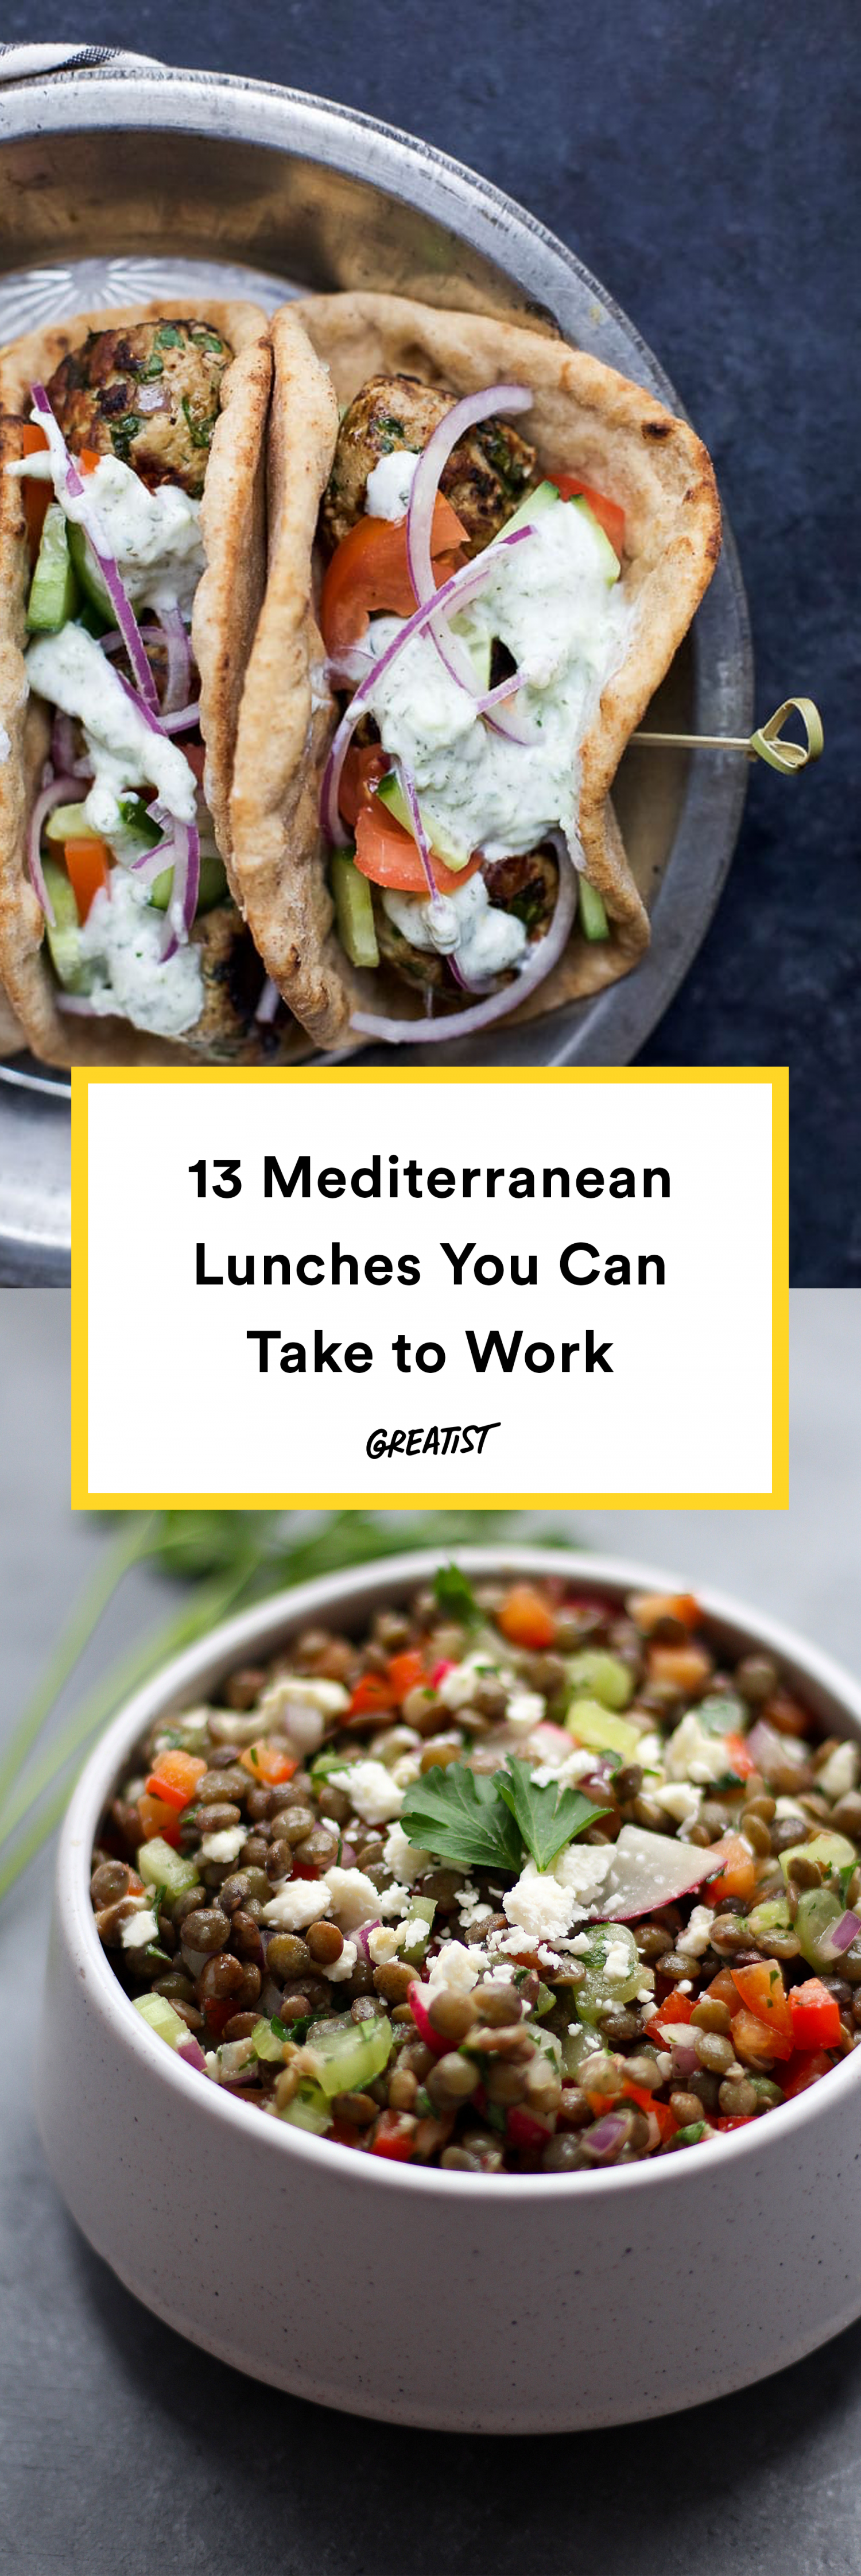 13 Mediterranean Diet Lunches That Make Meals at a Desk Way Better images